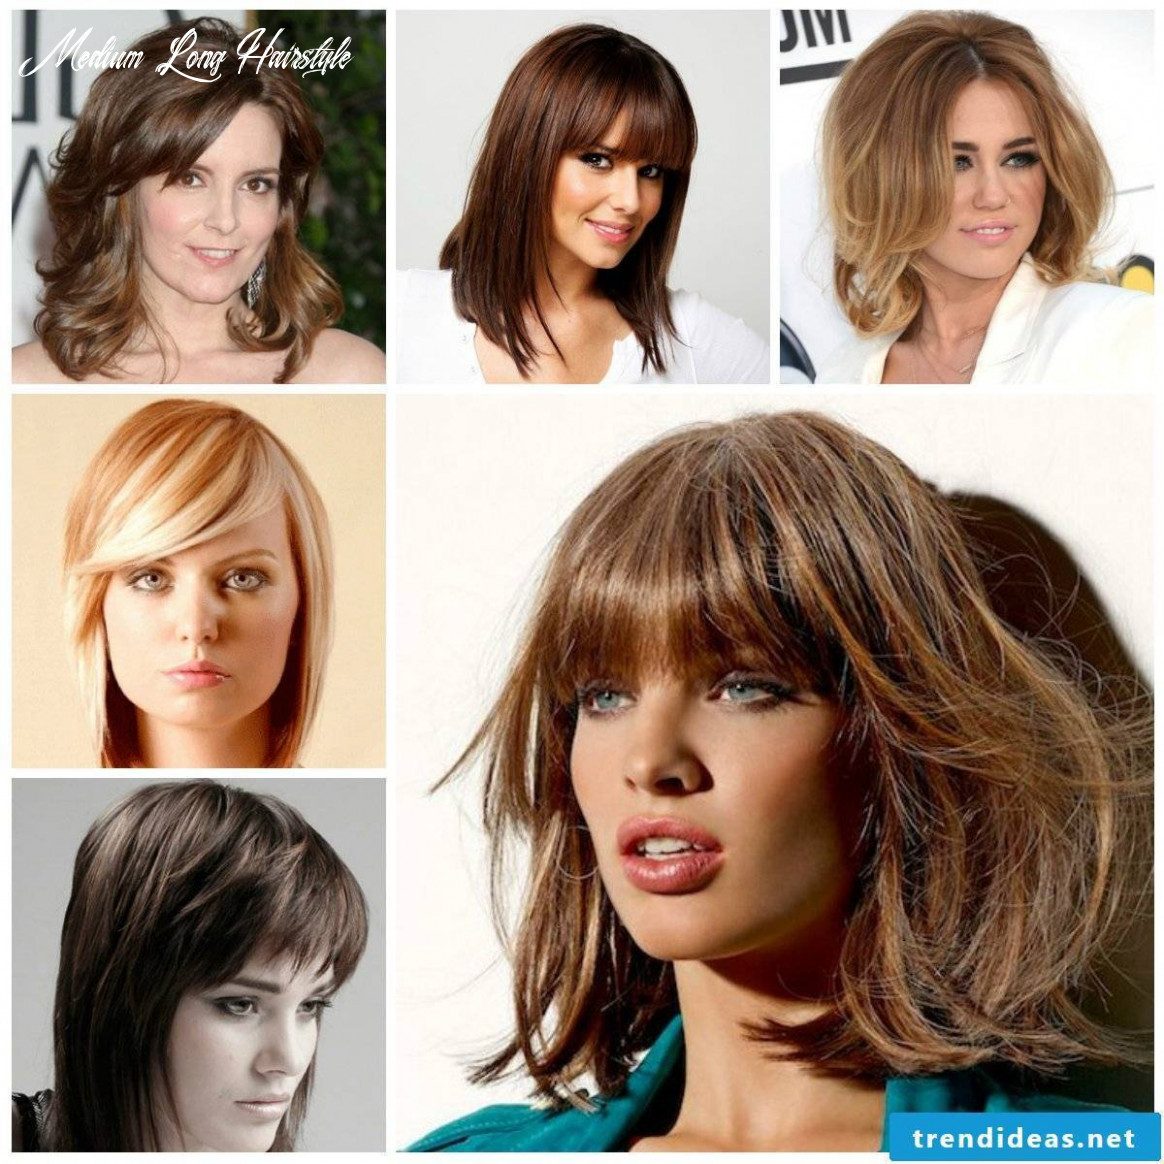 Fabulous hairstyles and latest trends for medium-long hair 9